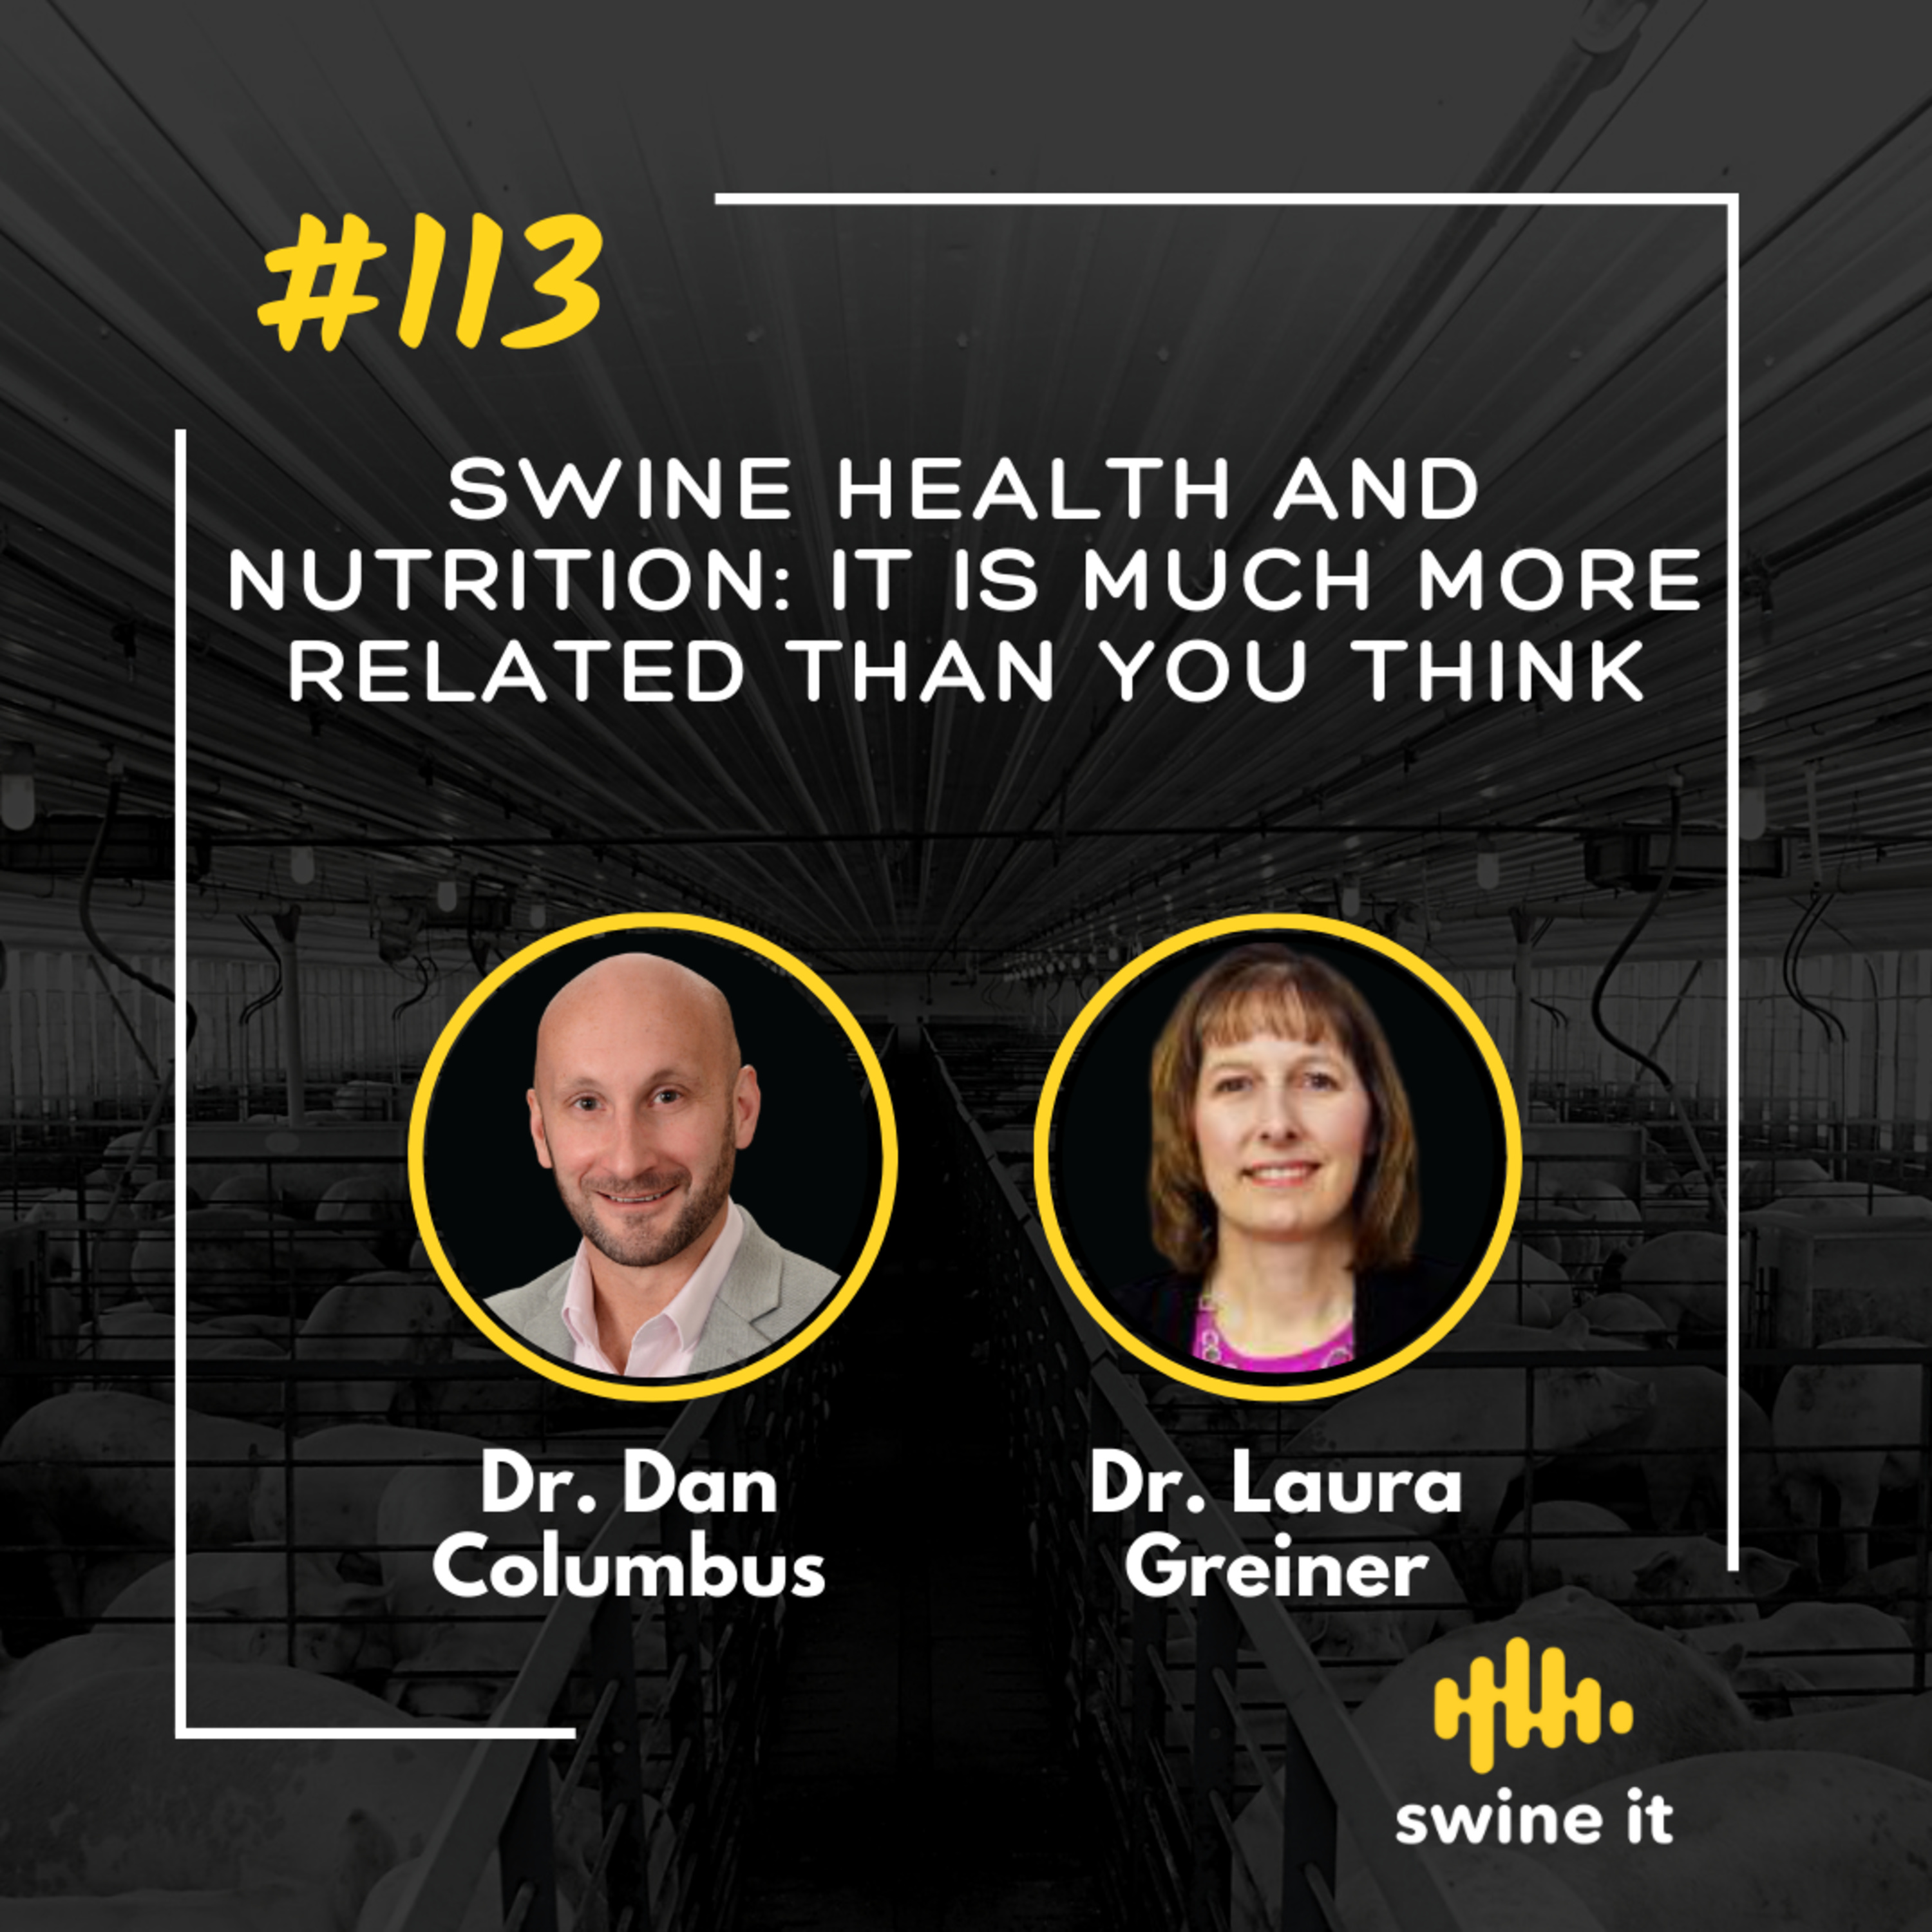 Swine health and nutrition: it is much more related than you think - Dr. Dan Columbus